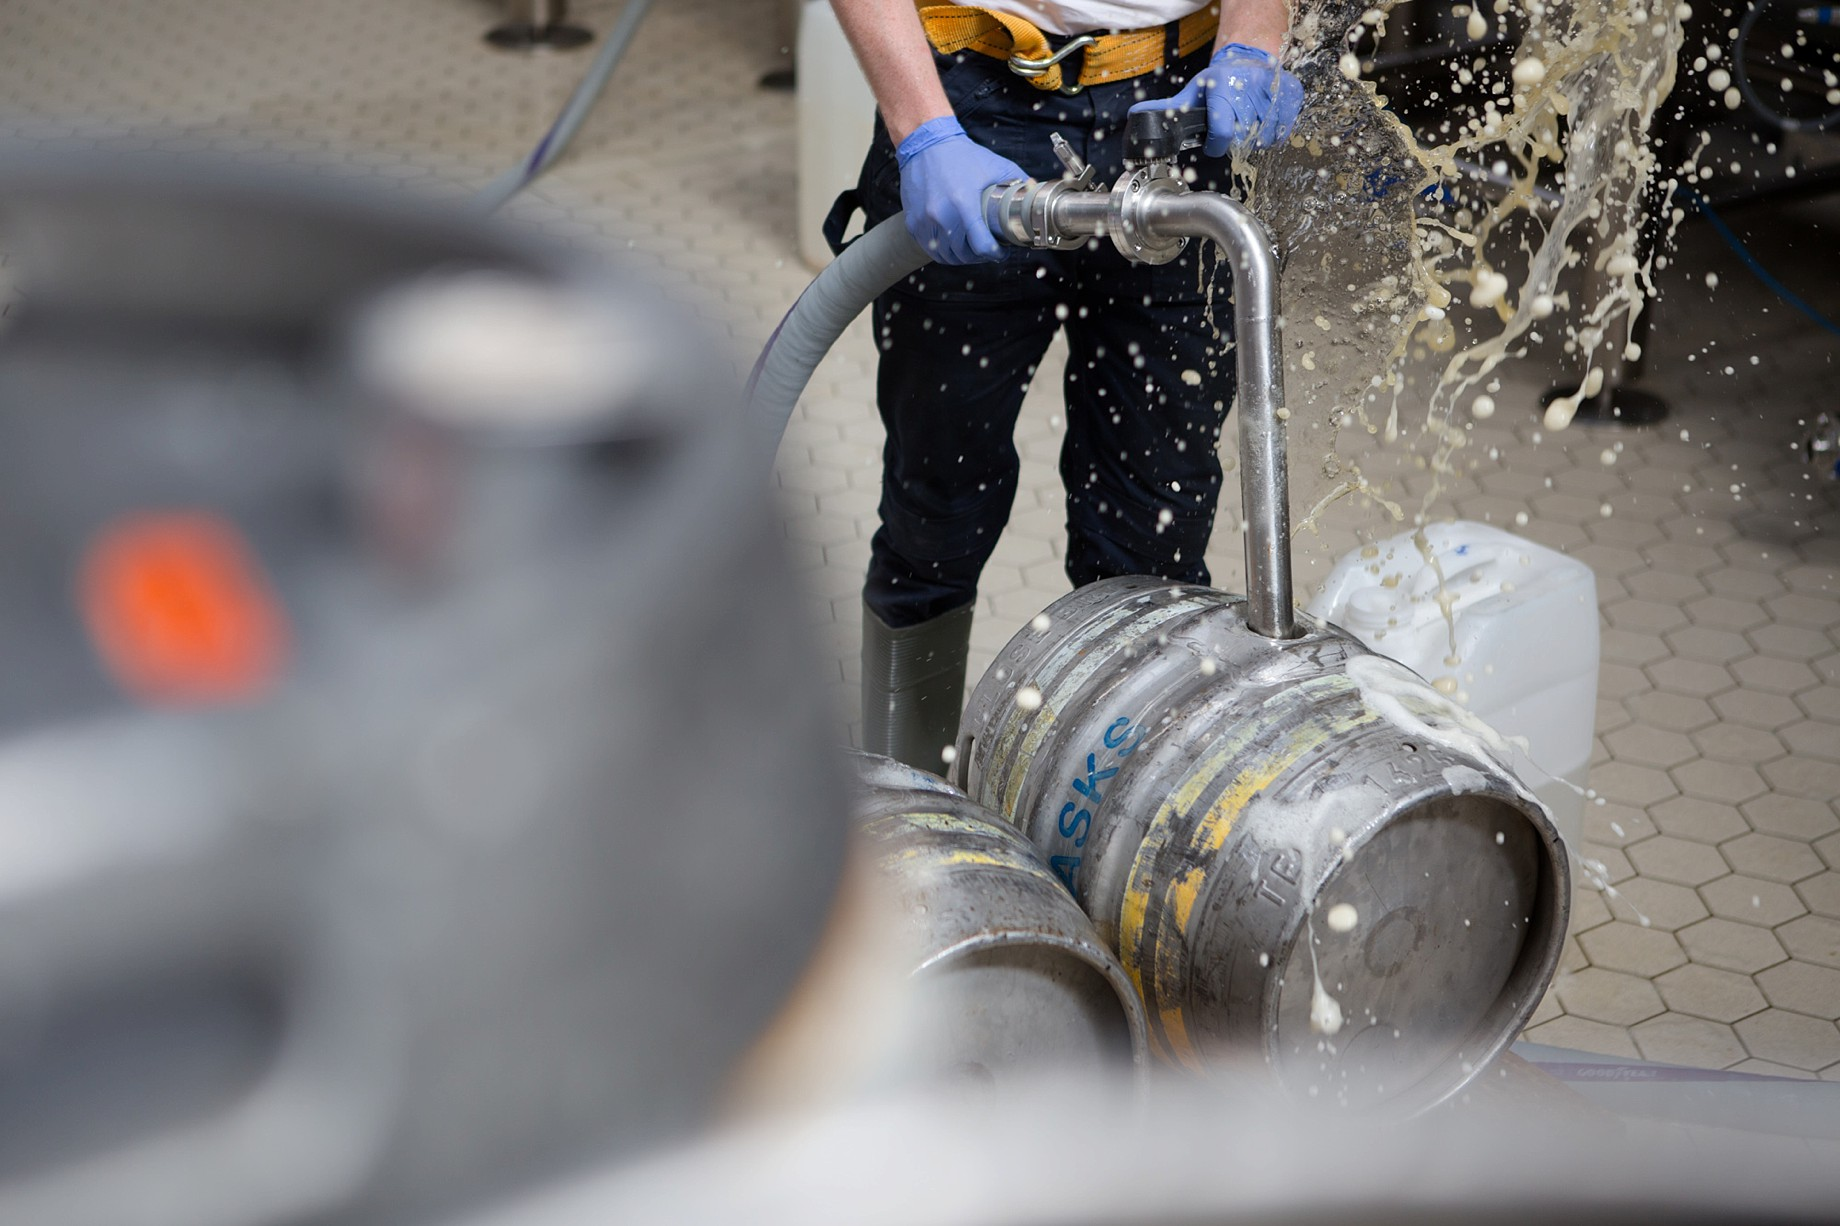 Cloudwater_brew_Co_021_cask_filling_mark_newton_photography.JPG